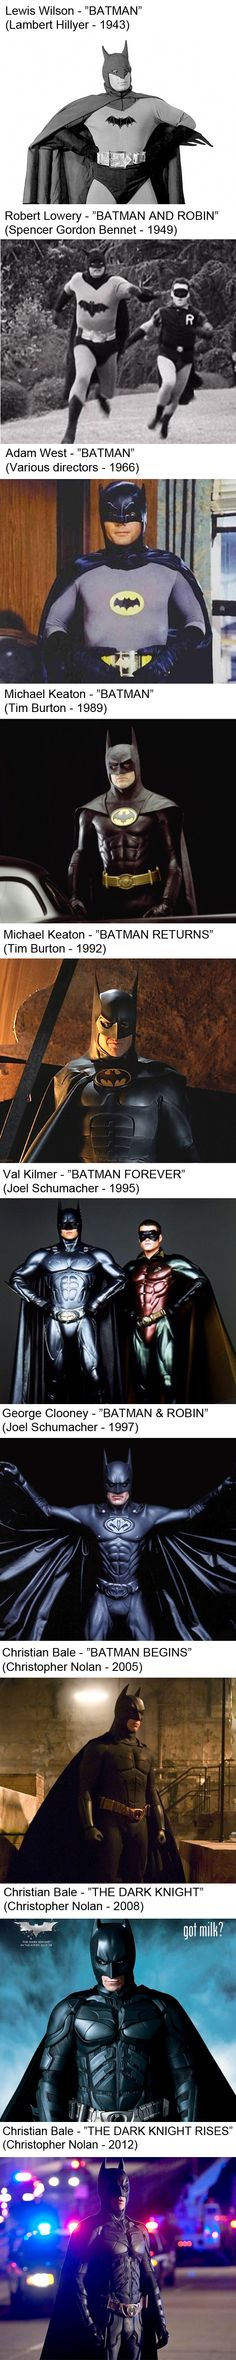 Evolution of Batman's suit